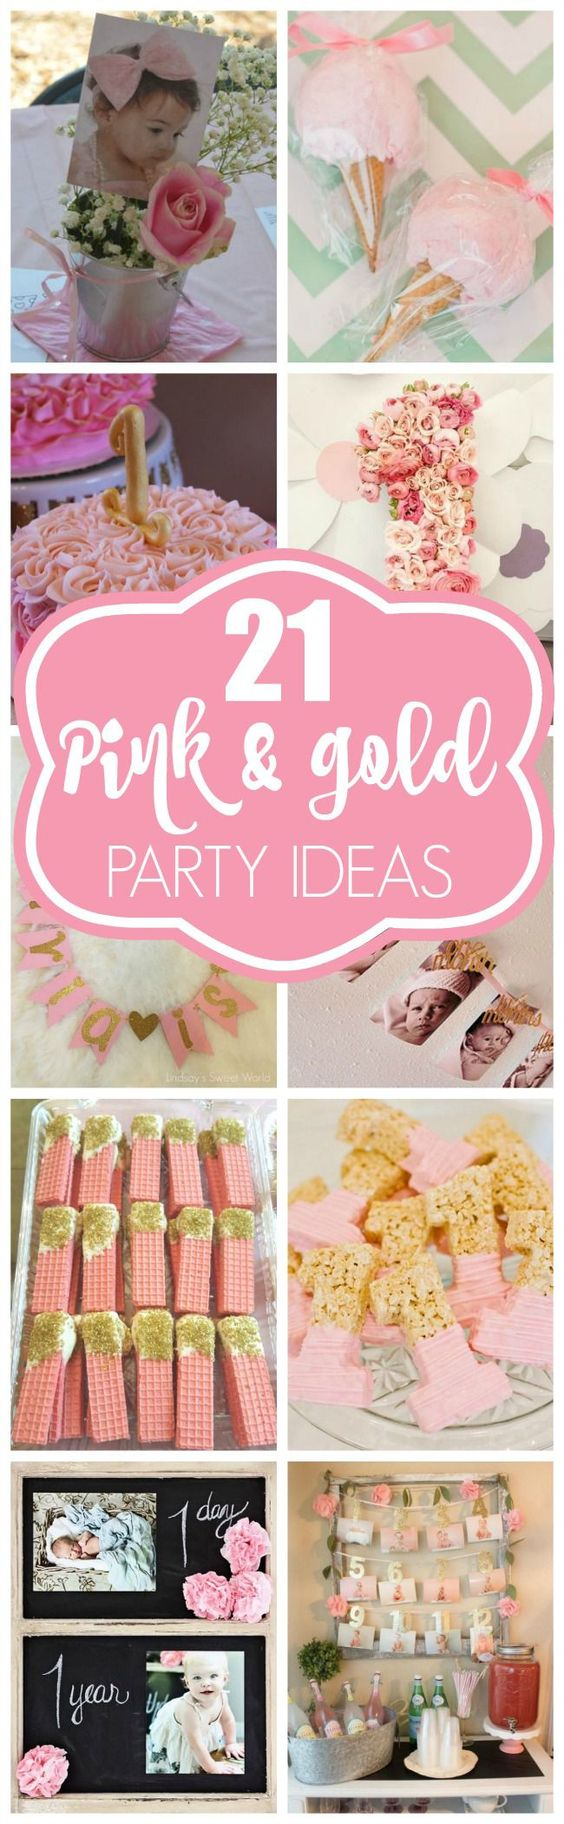 21 pink and gold